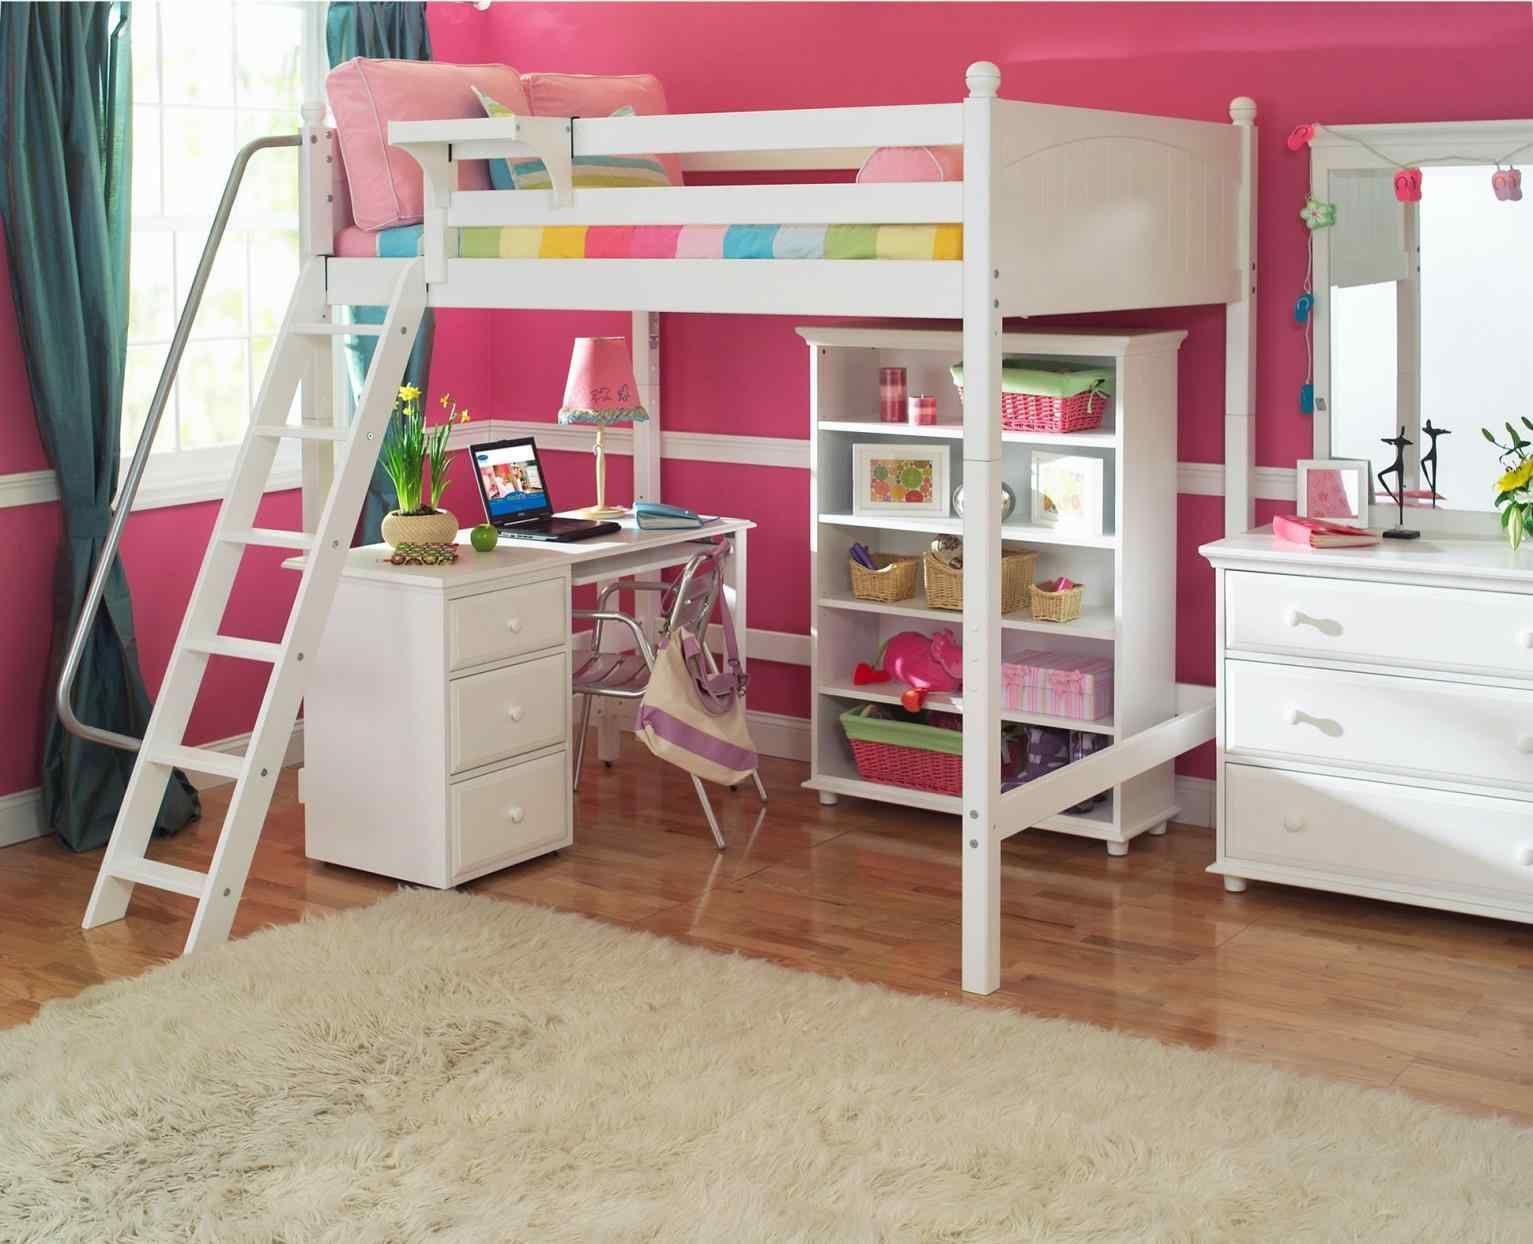 55+ Types Of Bunk Beds   Simple Interior Design For Bedroom Check More At  Http